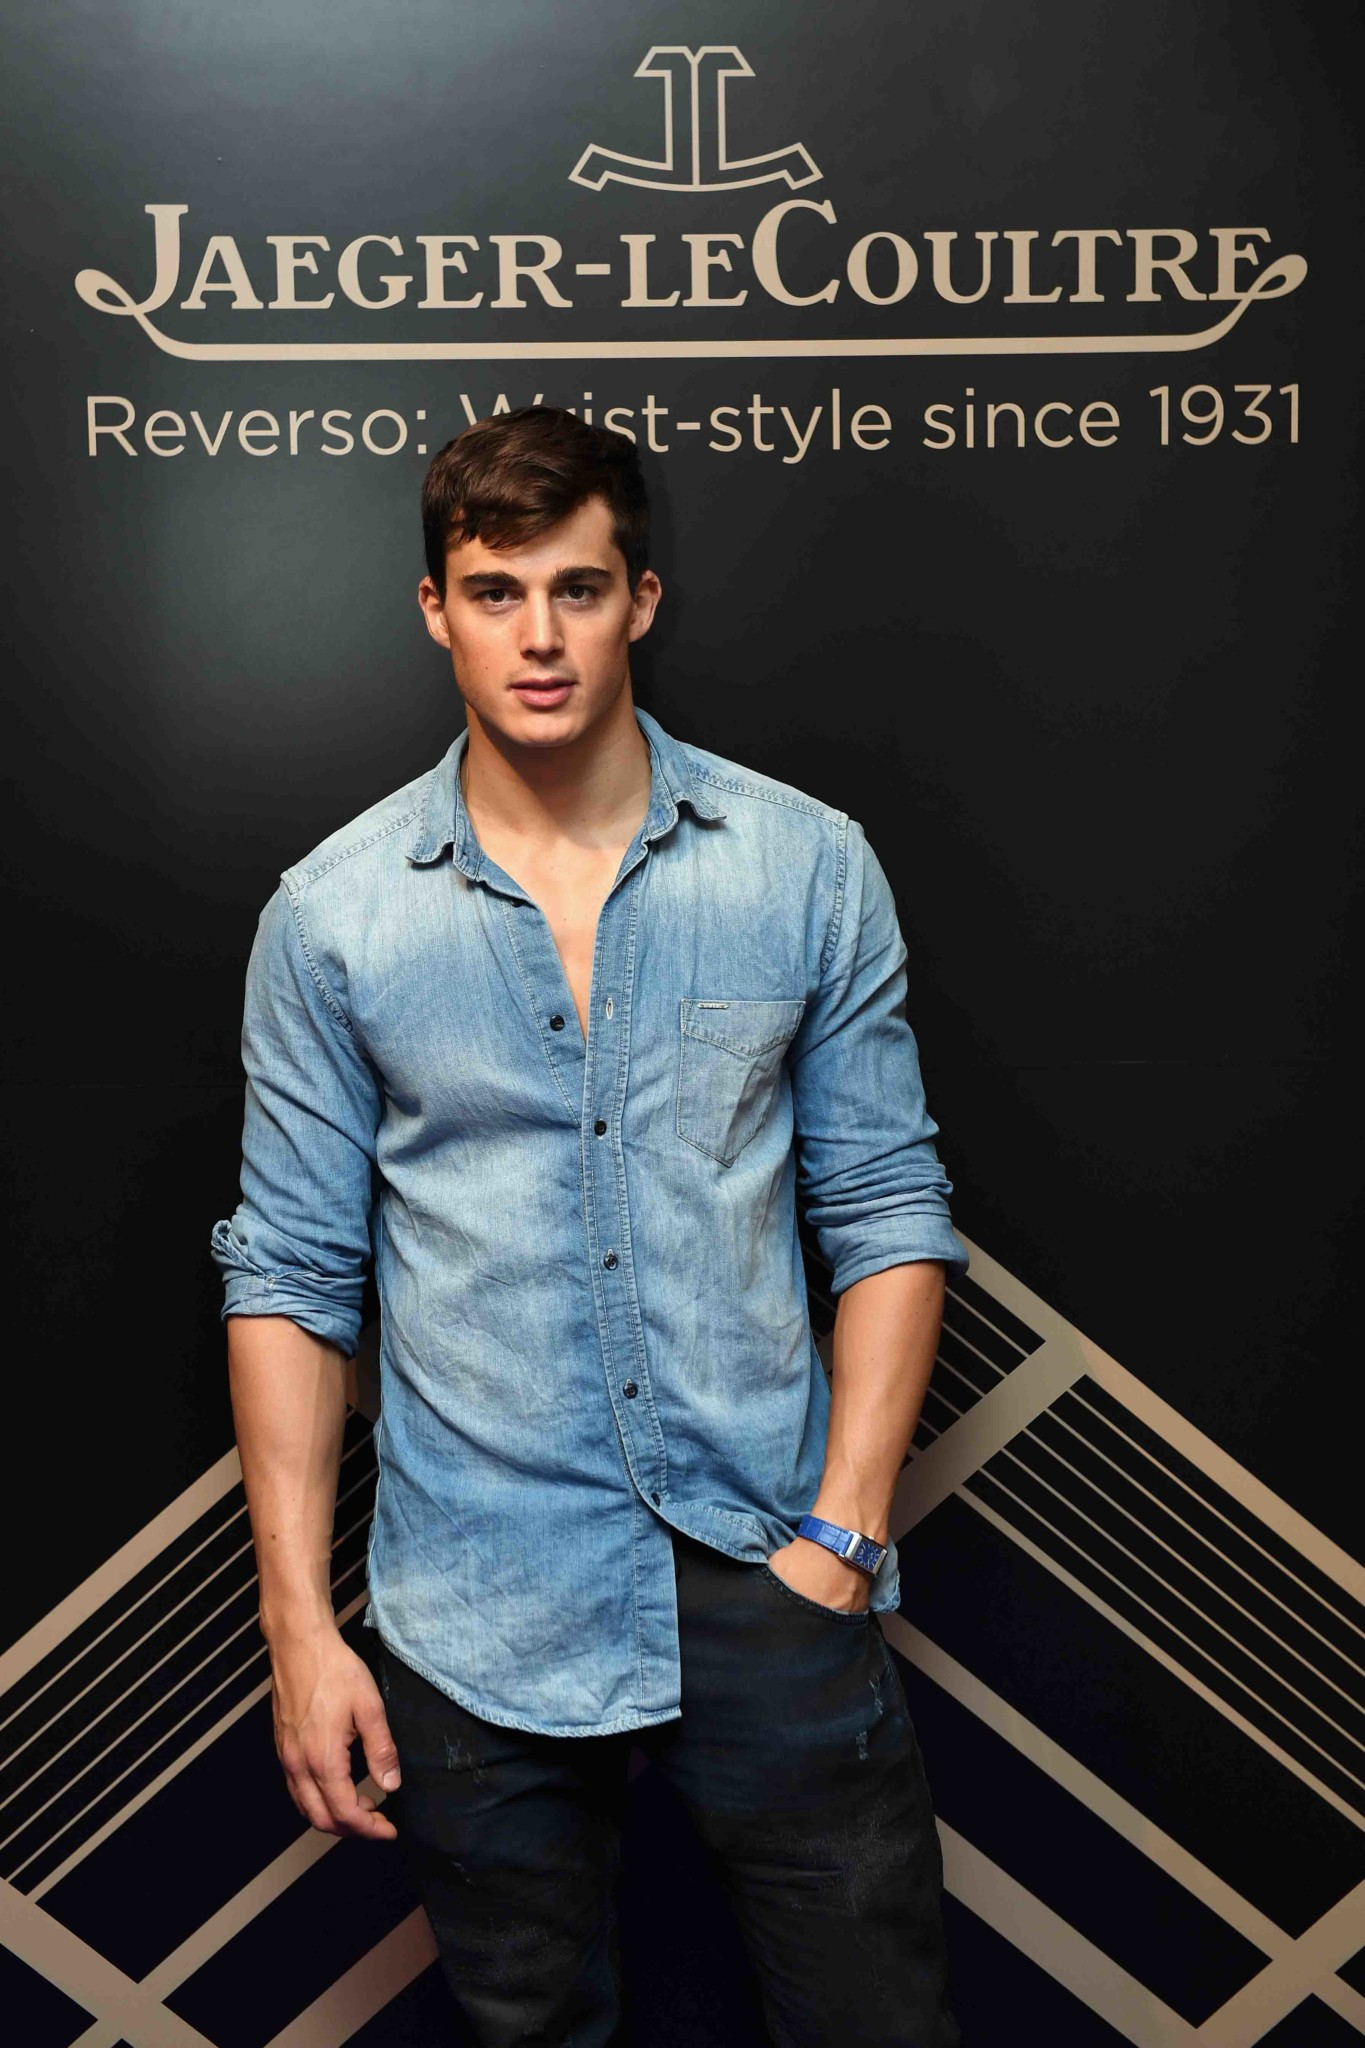 """LONDON, ENGLAND - MAY 31: Pietro Boselli attends Jaeger-LeCoultre & Christie's """"Roaring 20's, Reverso 30's"""" Party at Christie's South Kensington on May 31, 2017 in London, England. (Photo by Chris J Ratcliffe/Getty Images for Jaeger-LeCoultre) *** Local Caption *** Pietro Boselli"""